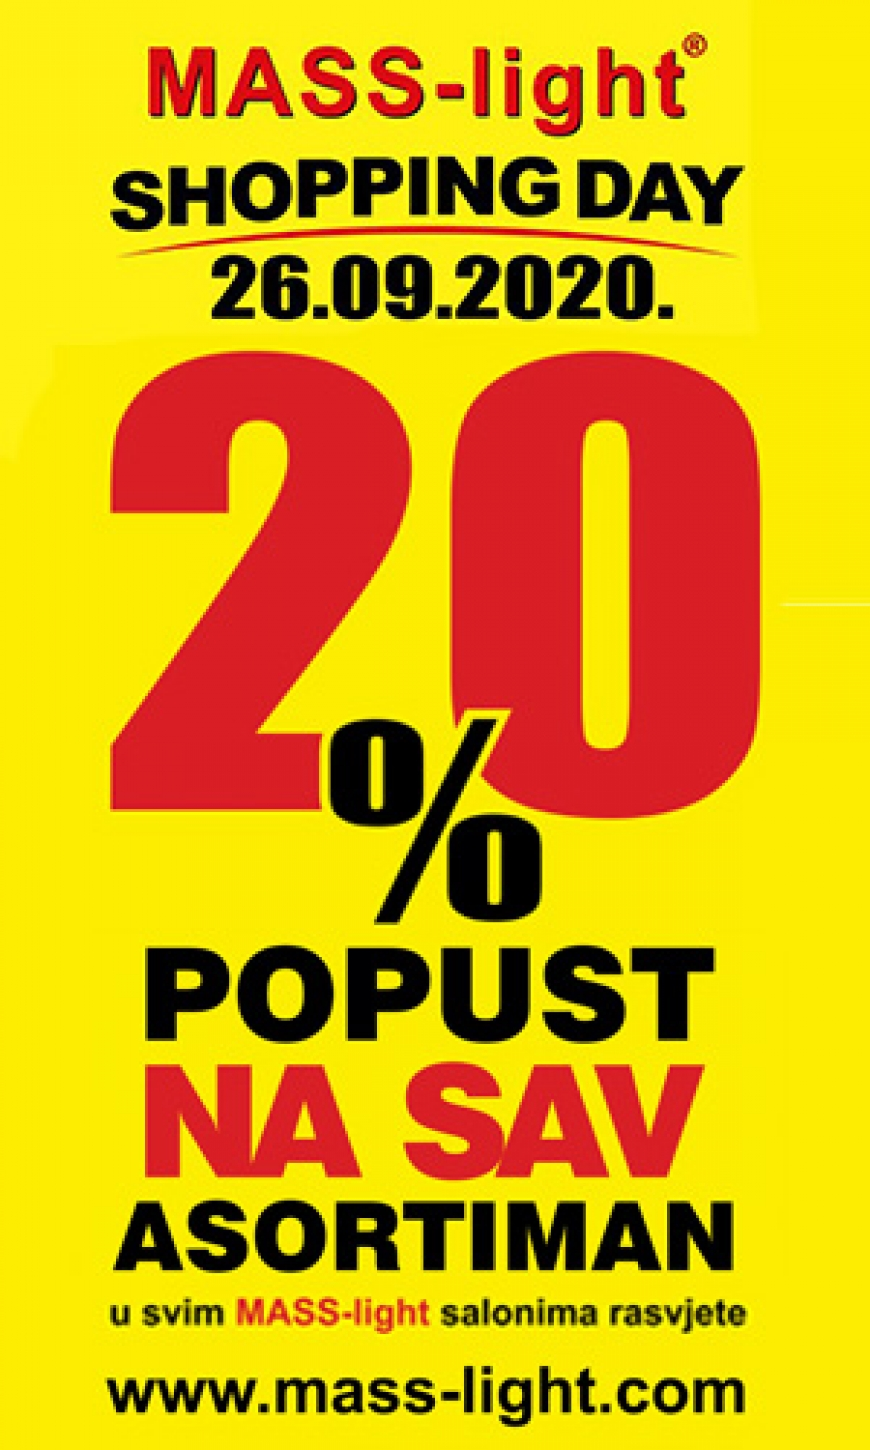 Shopping Day -20% Subota 26.09.2020. - Mass-light rasvjeta